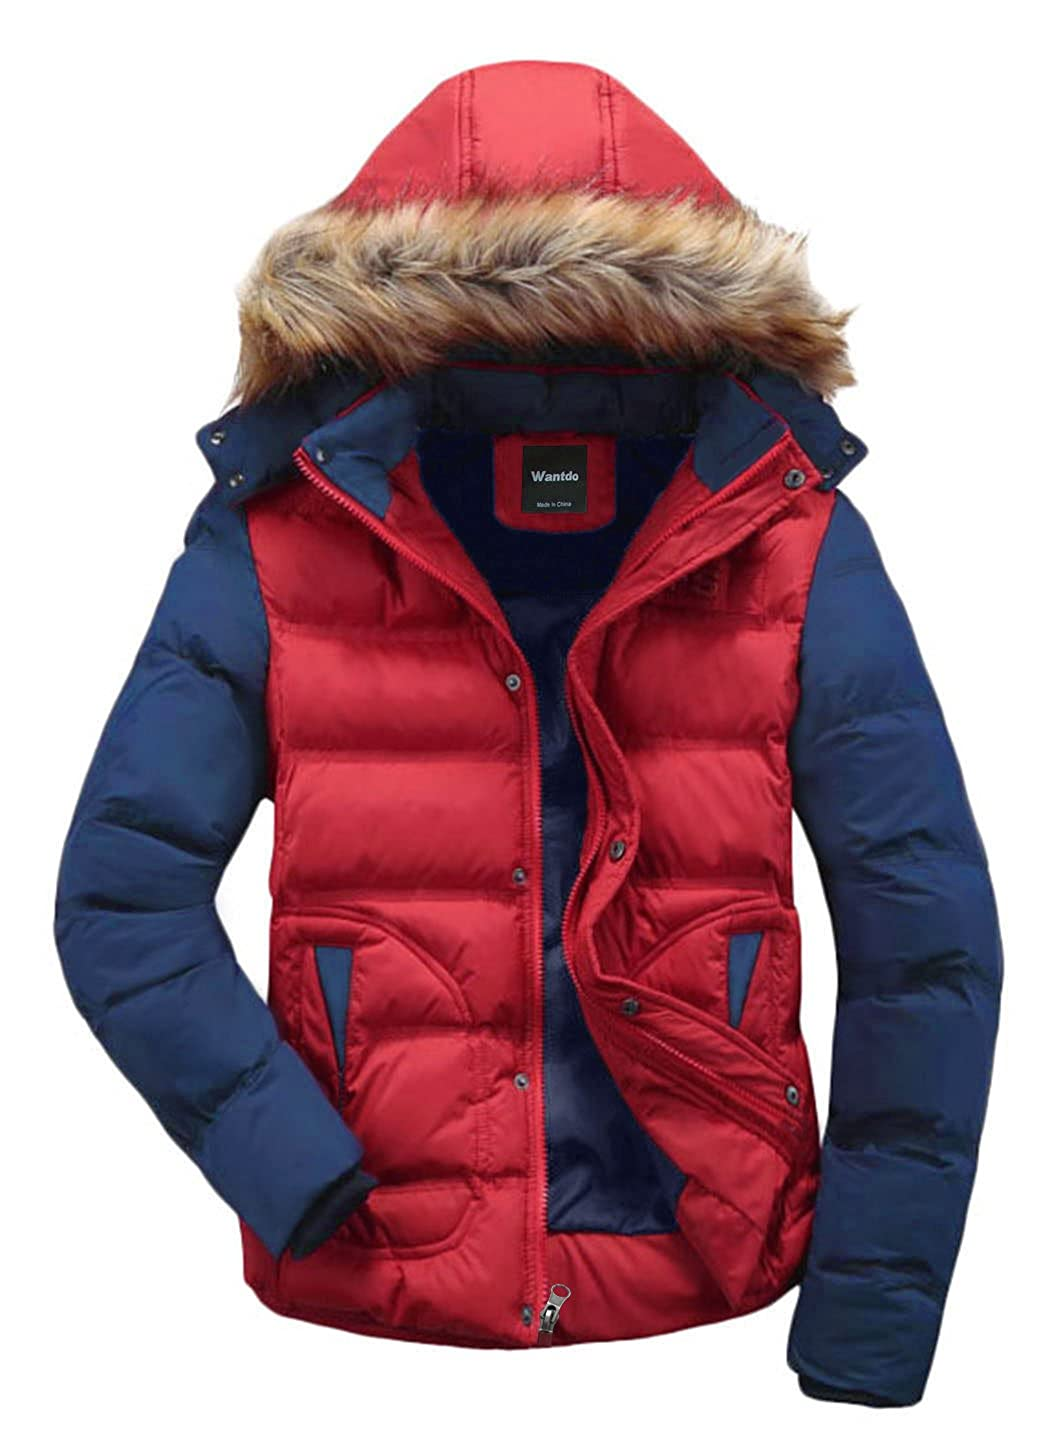 Wantdo Men's Winter Puffer Coat Casual Fur Hooded Warm Outwear Jacket